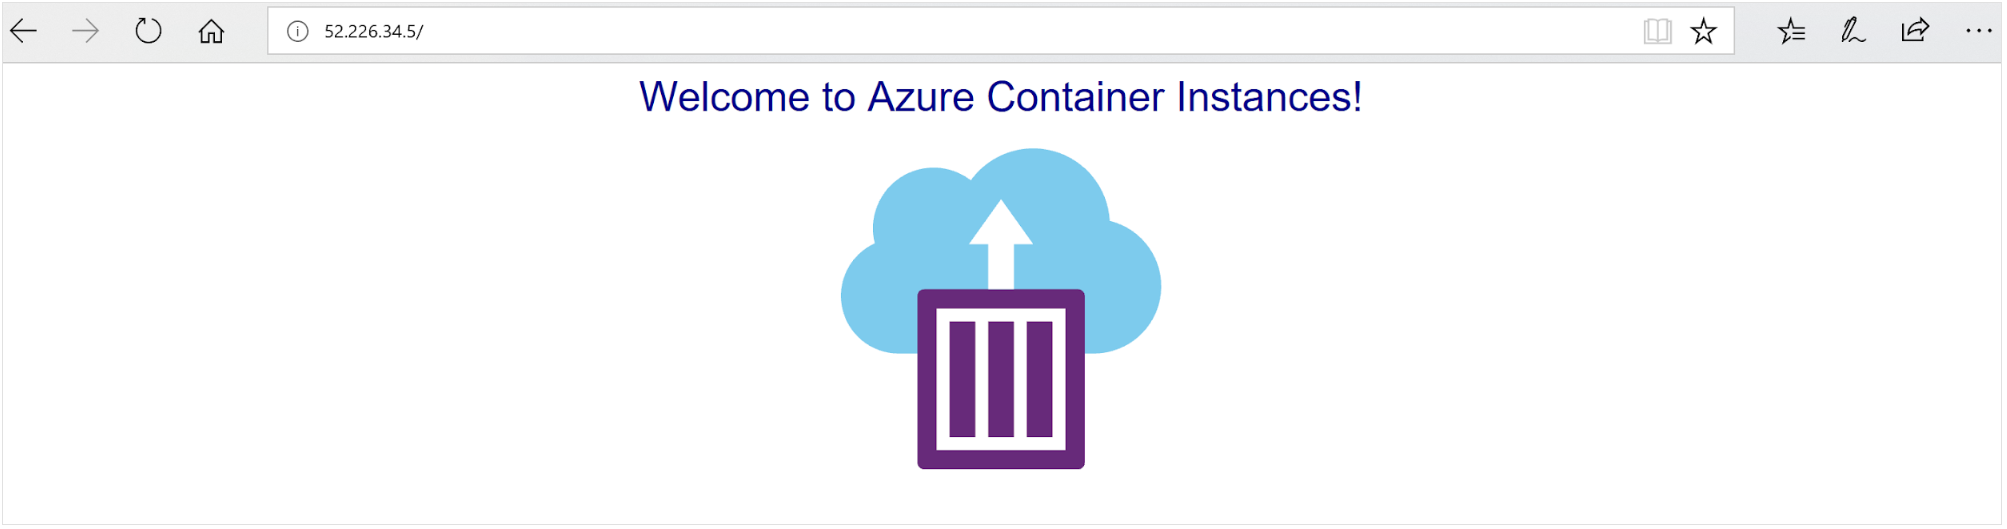 Microsoft-Azure-container-instance